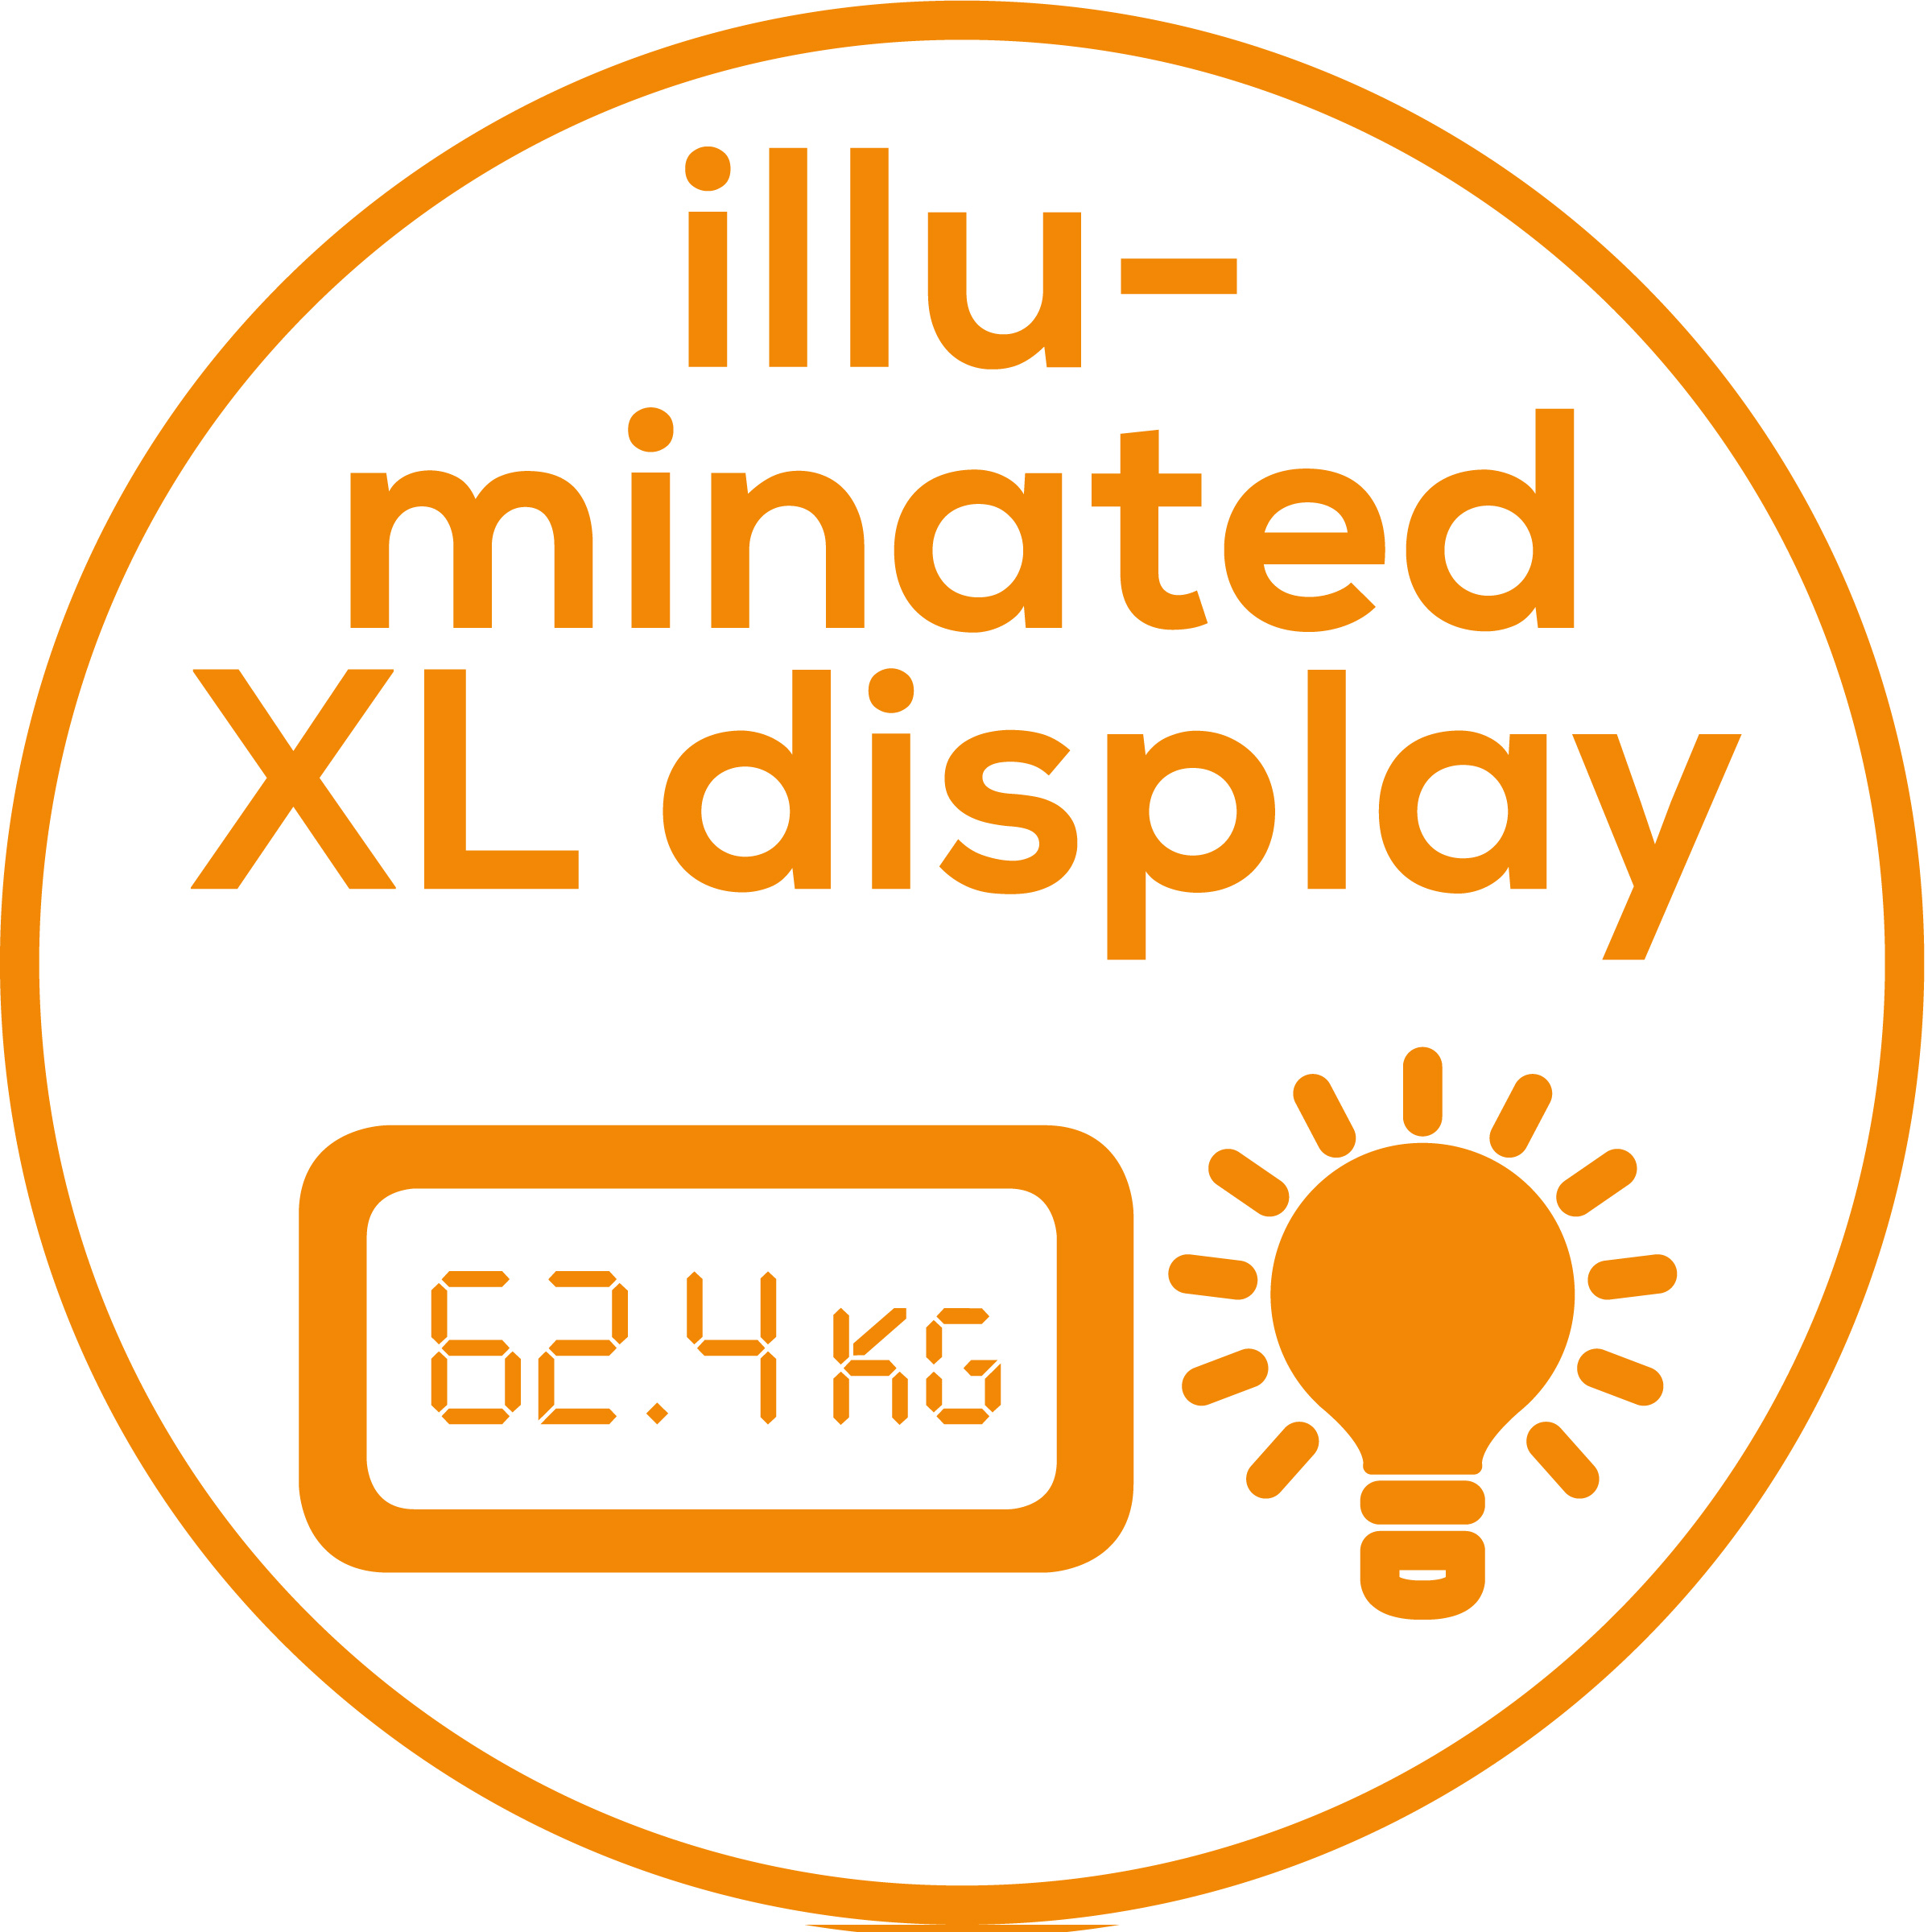 Display XL Display XL illuminato per una leggibilità ottimale